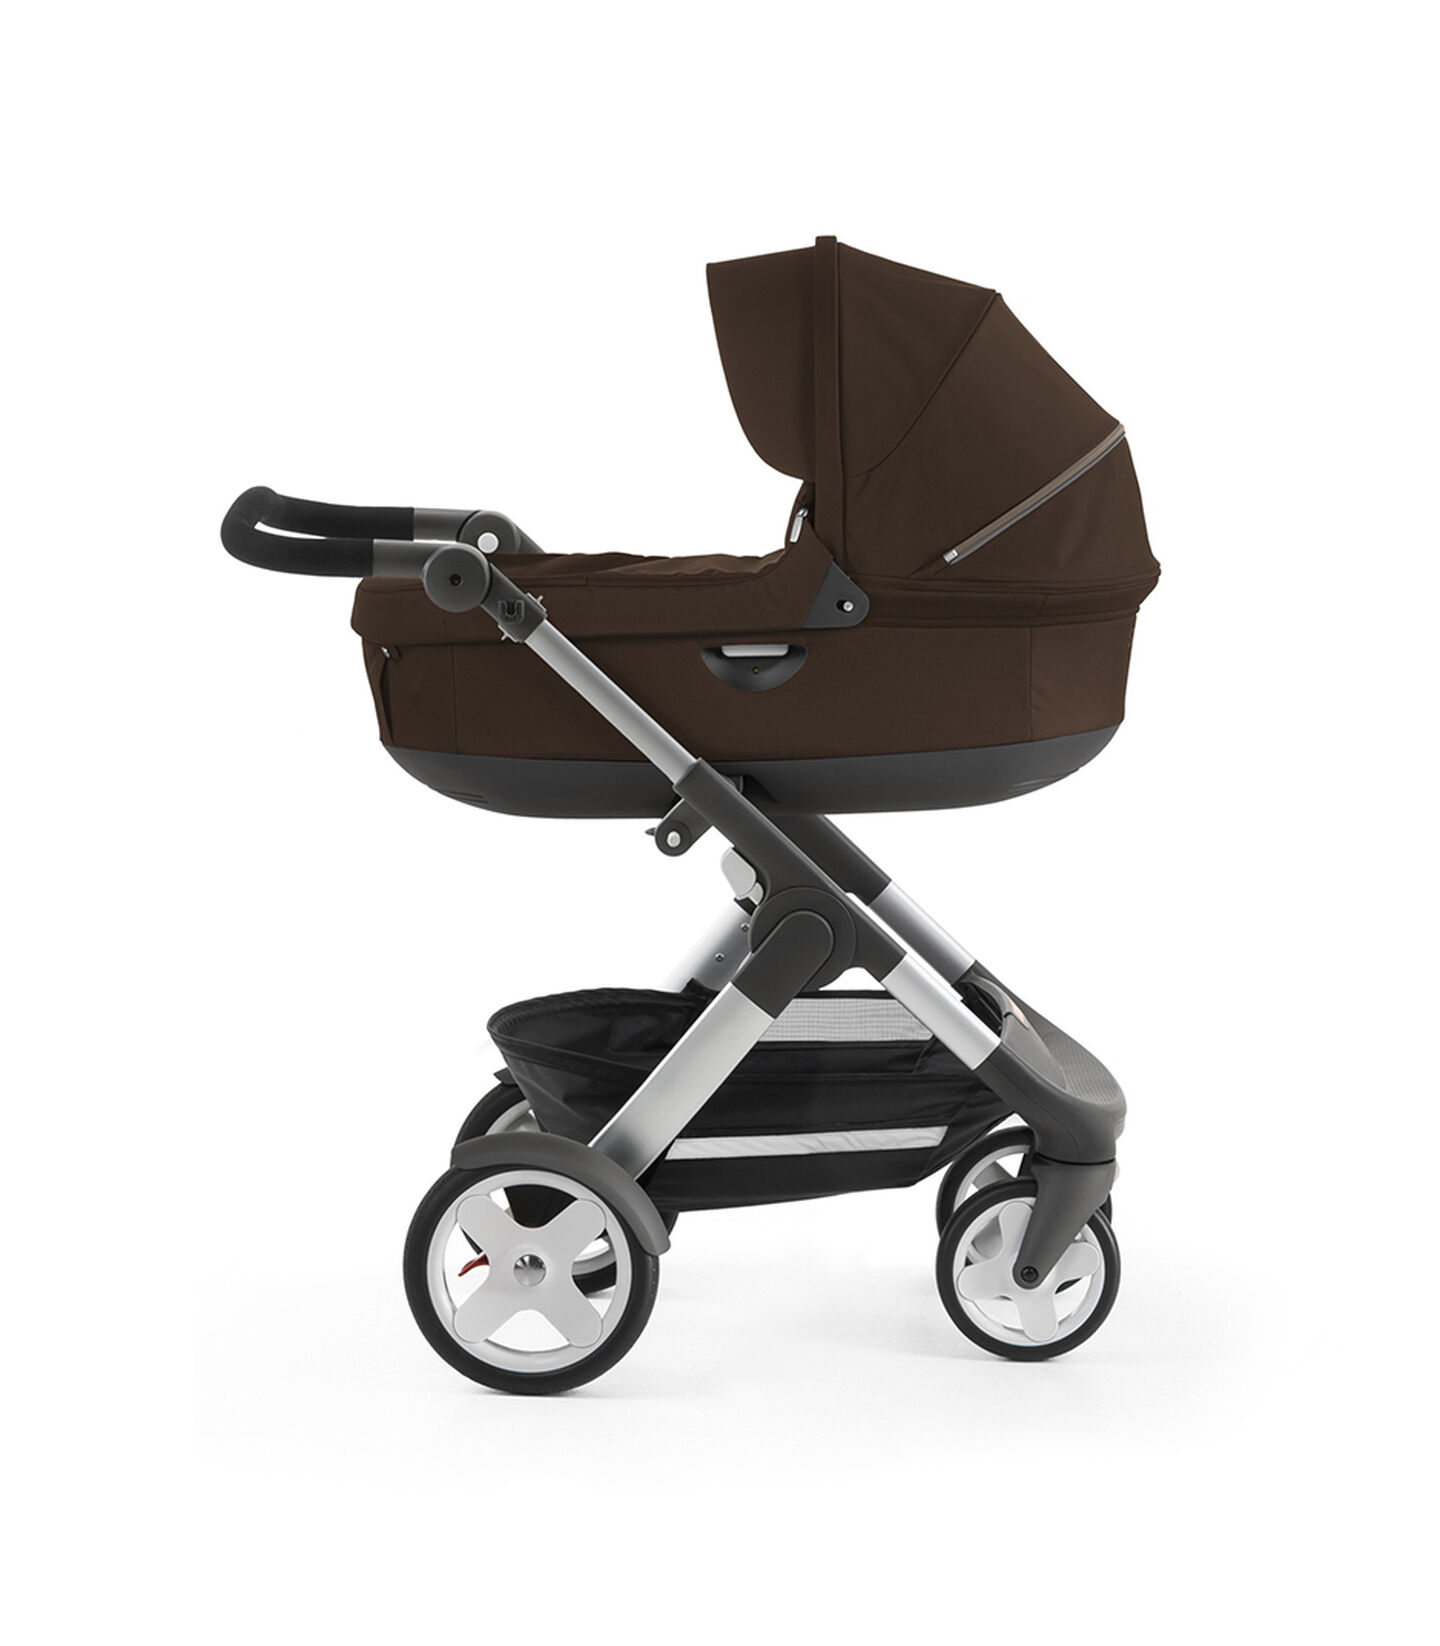 Stokke® Trailz™ Classic w Carry Cot Brown, Brown, mainview view 2